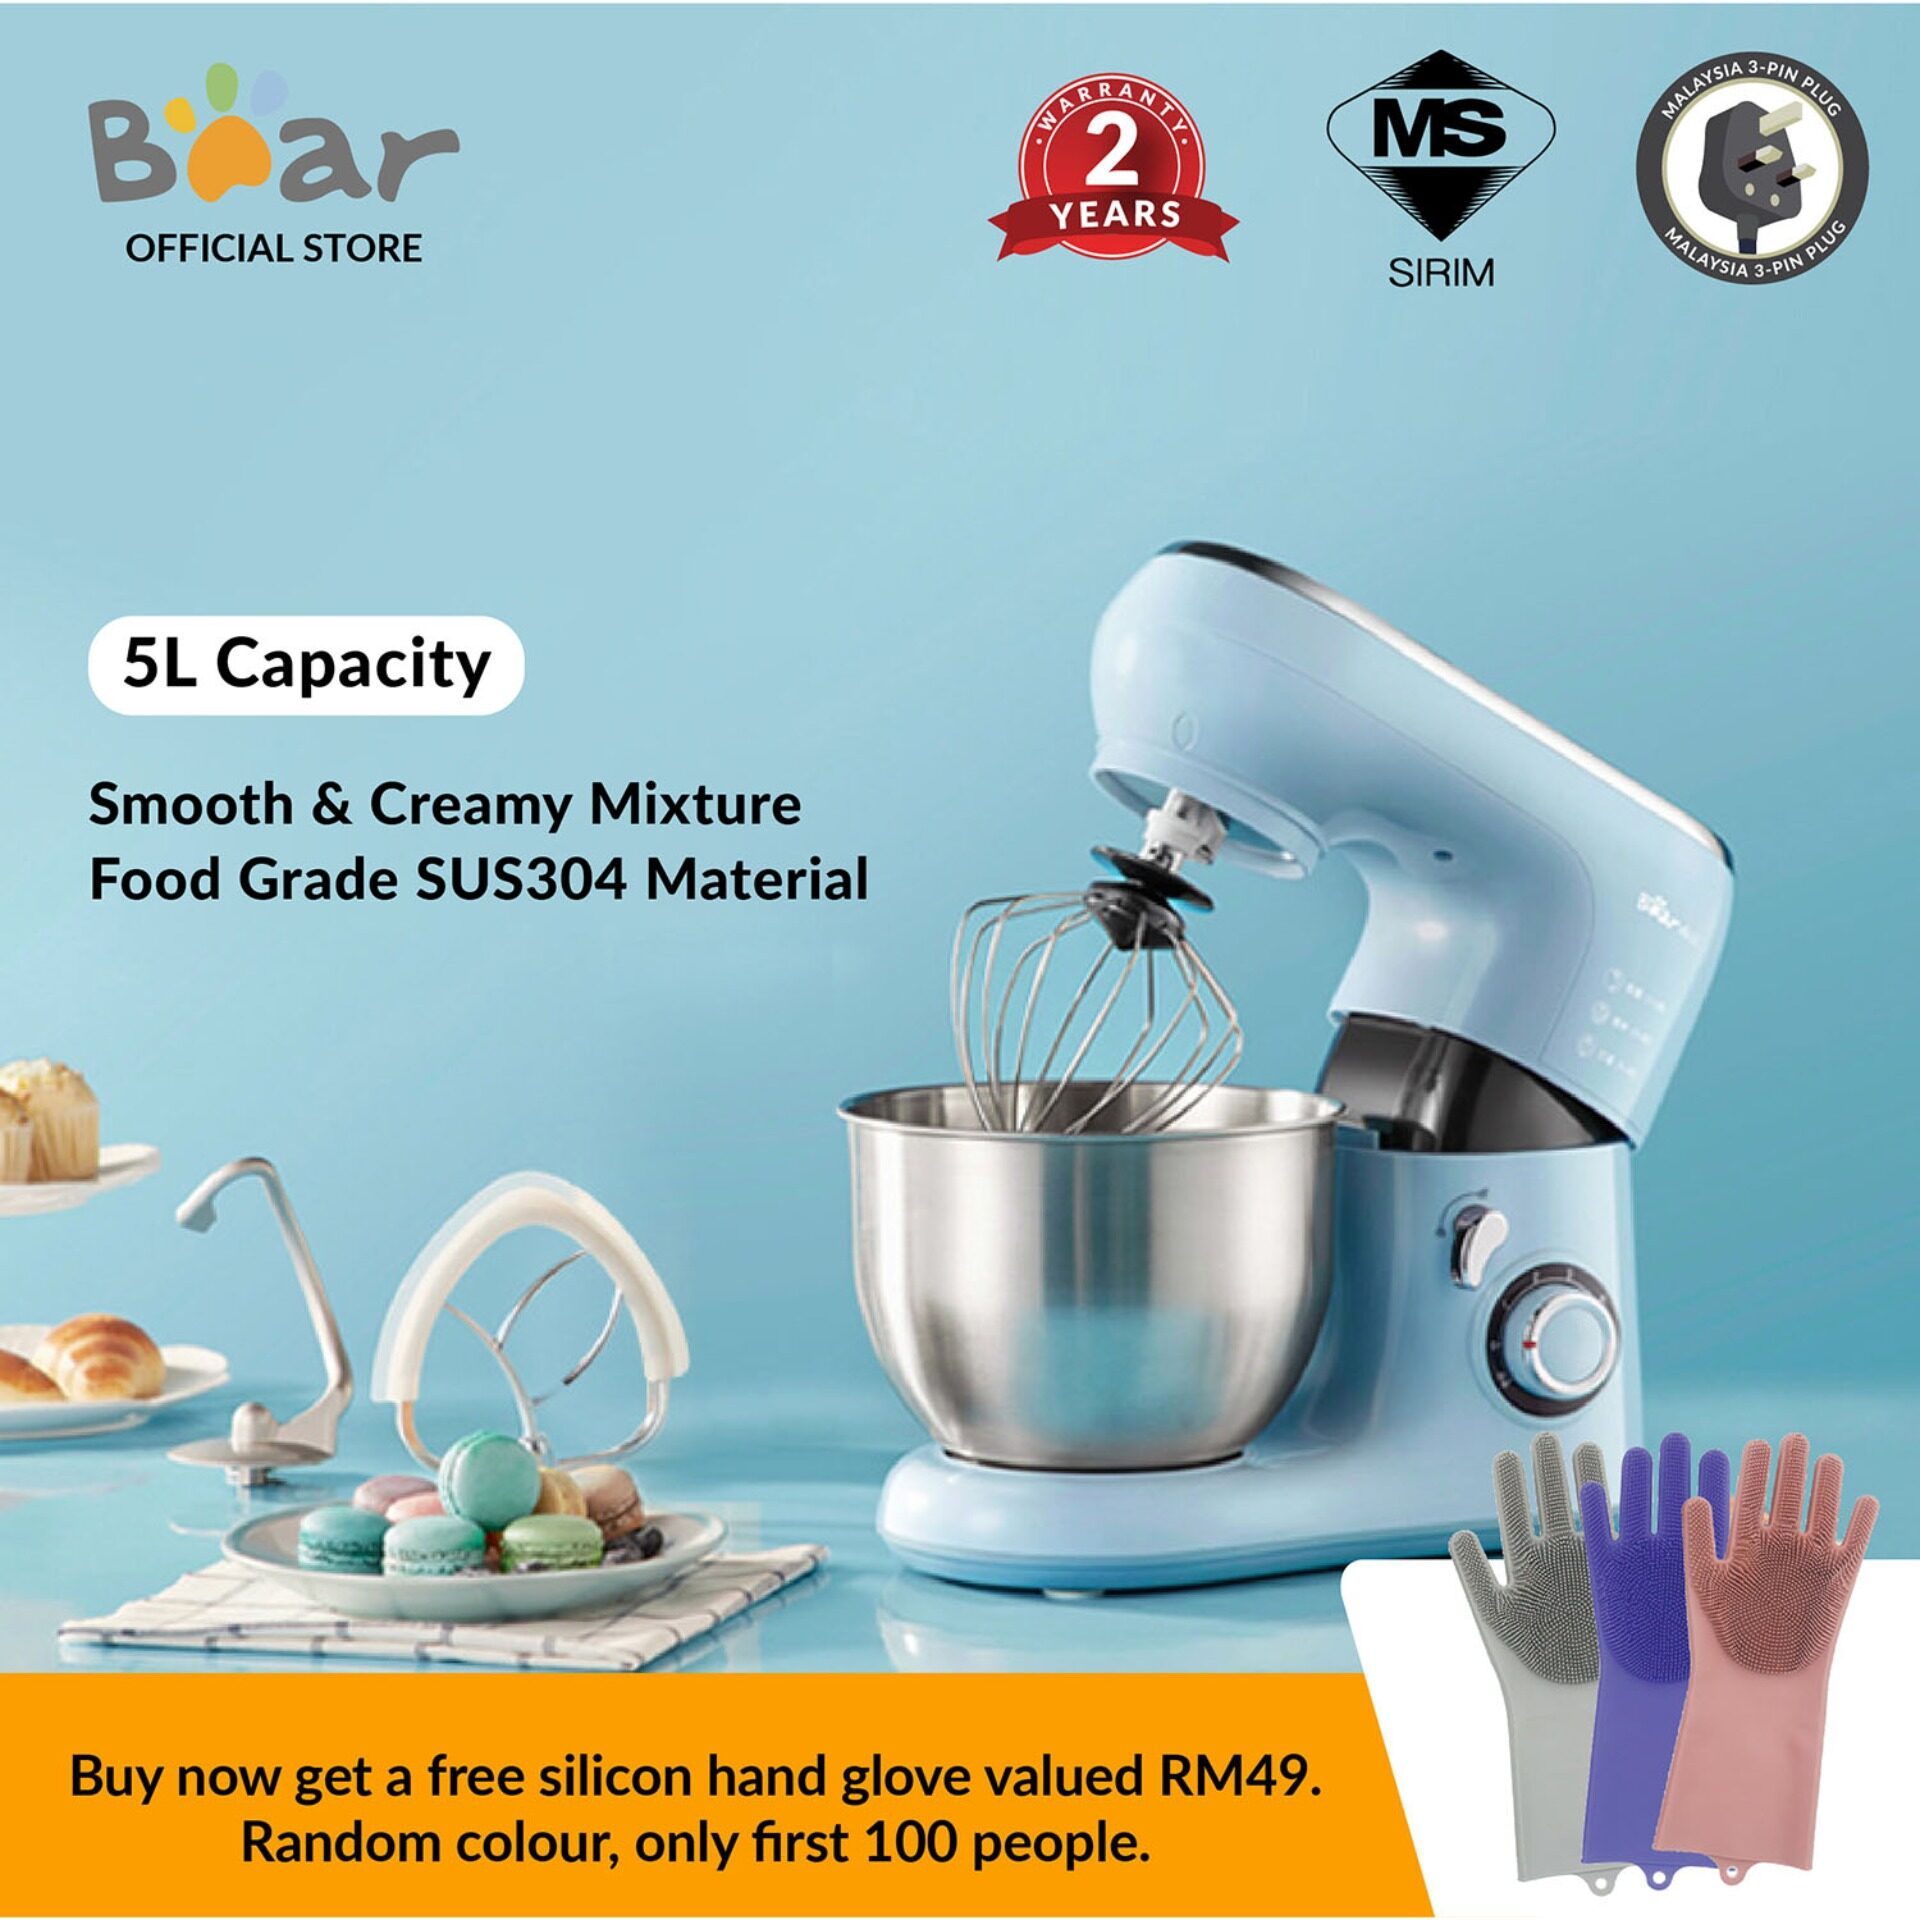 Bear dough mixer SJJ-B10Q1 5L bread maker home automatic mixer/ timing dough machine /power stand mixer/chef machine flour dough machine /multi-function eggbeater automatic /household mixing machine   (Malaysia 3-Pin Plug)